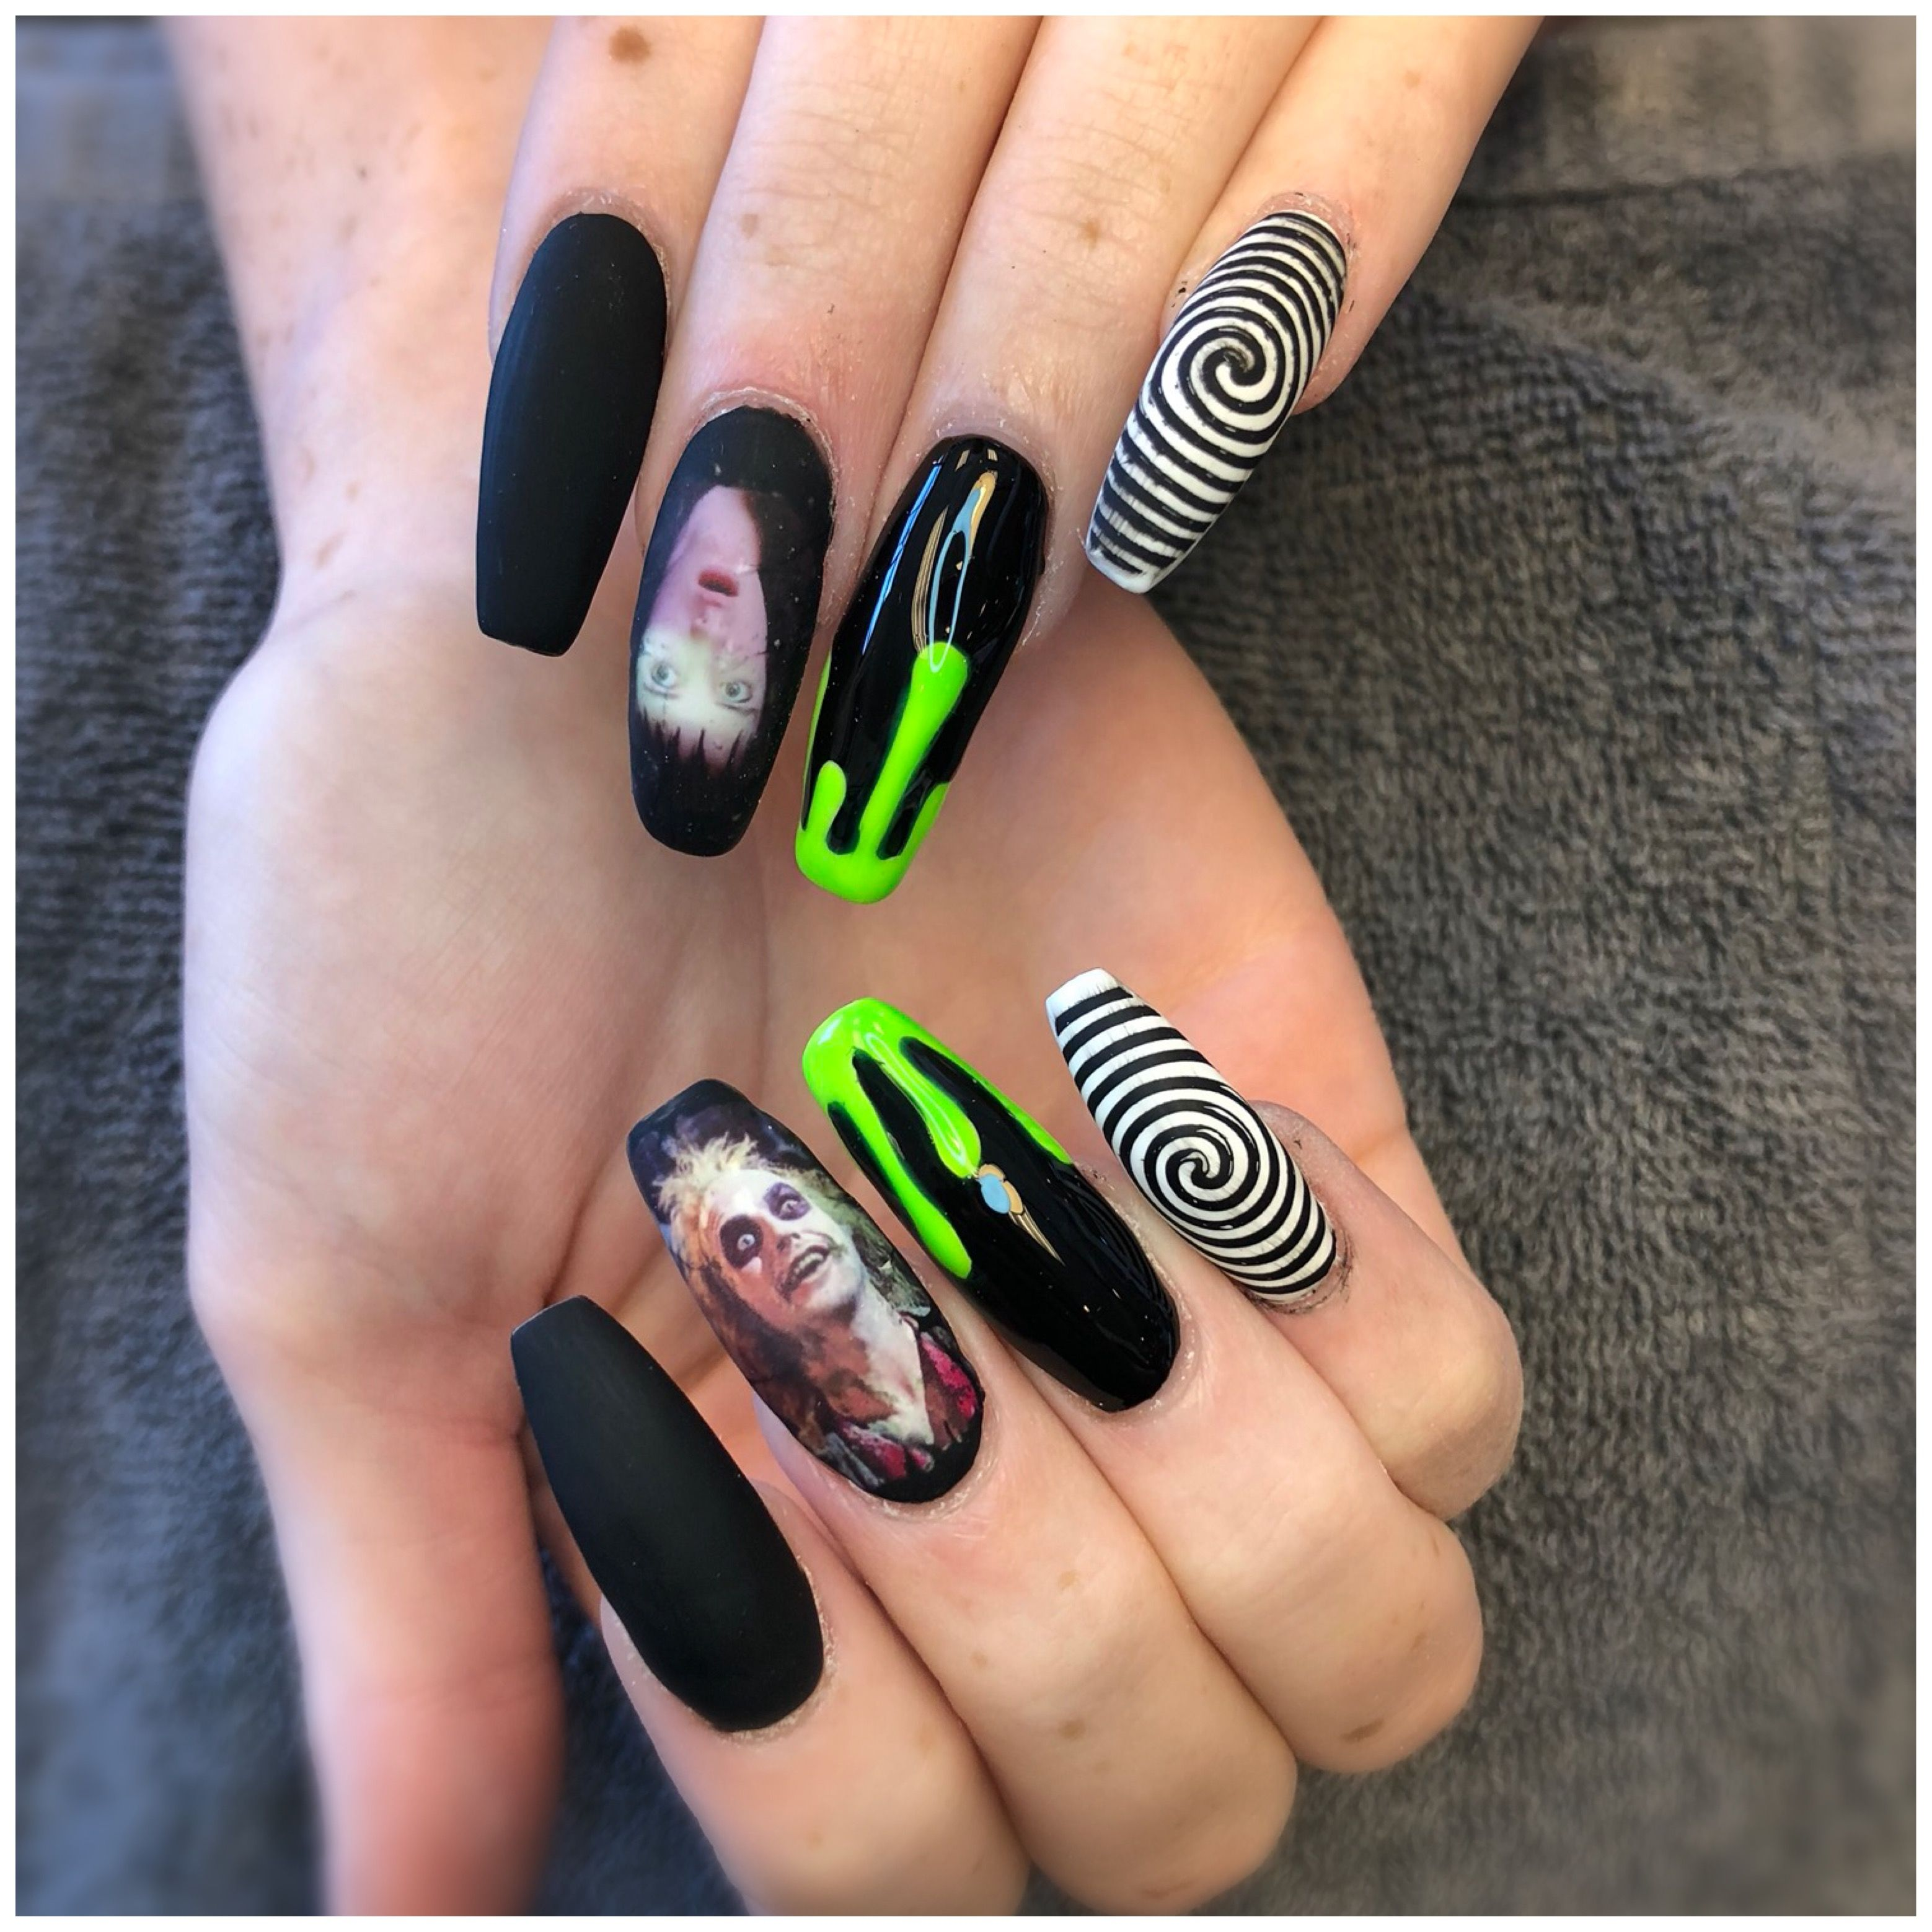 Beetle Juice Nails Halloween Nails Coffin Nails Long Nails Halloween Acrylic Nails Halloween Nails Cute Acrylic Nails